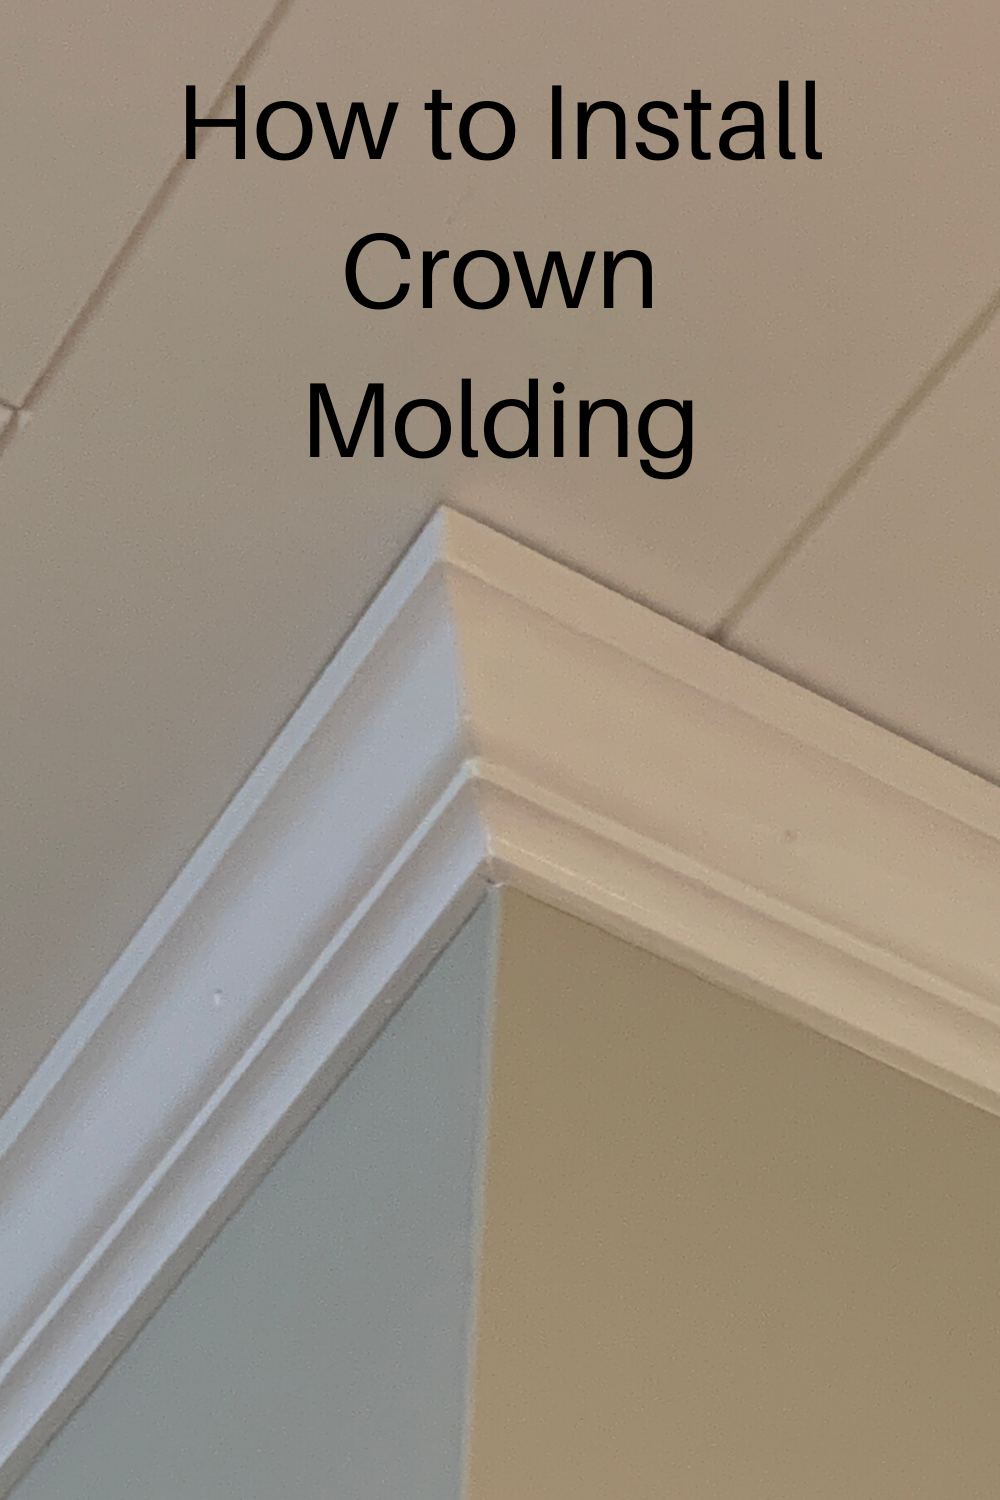 How To Install Crown Molding In 2020 Crown Molding Installation Crown Molding Crown Molding Bathroom